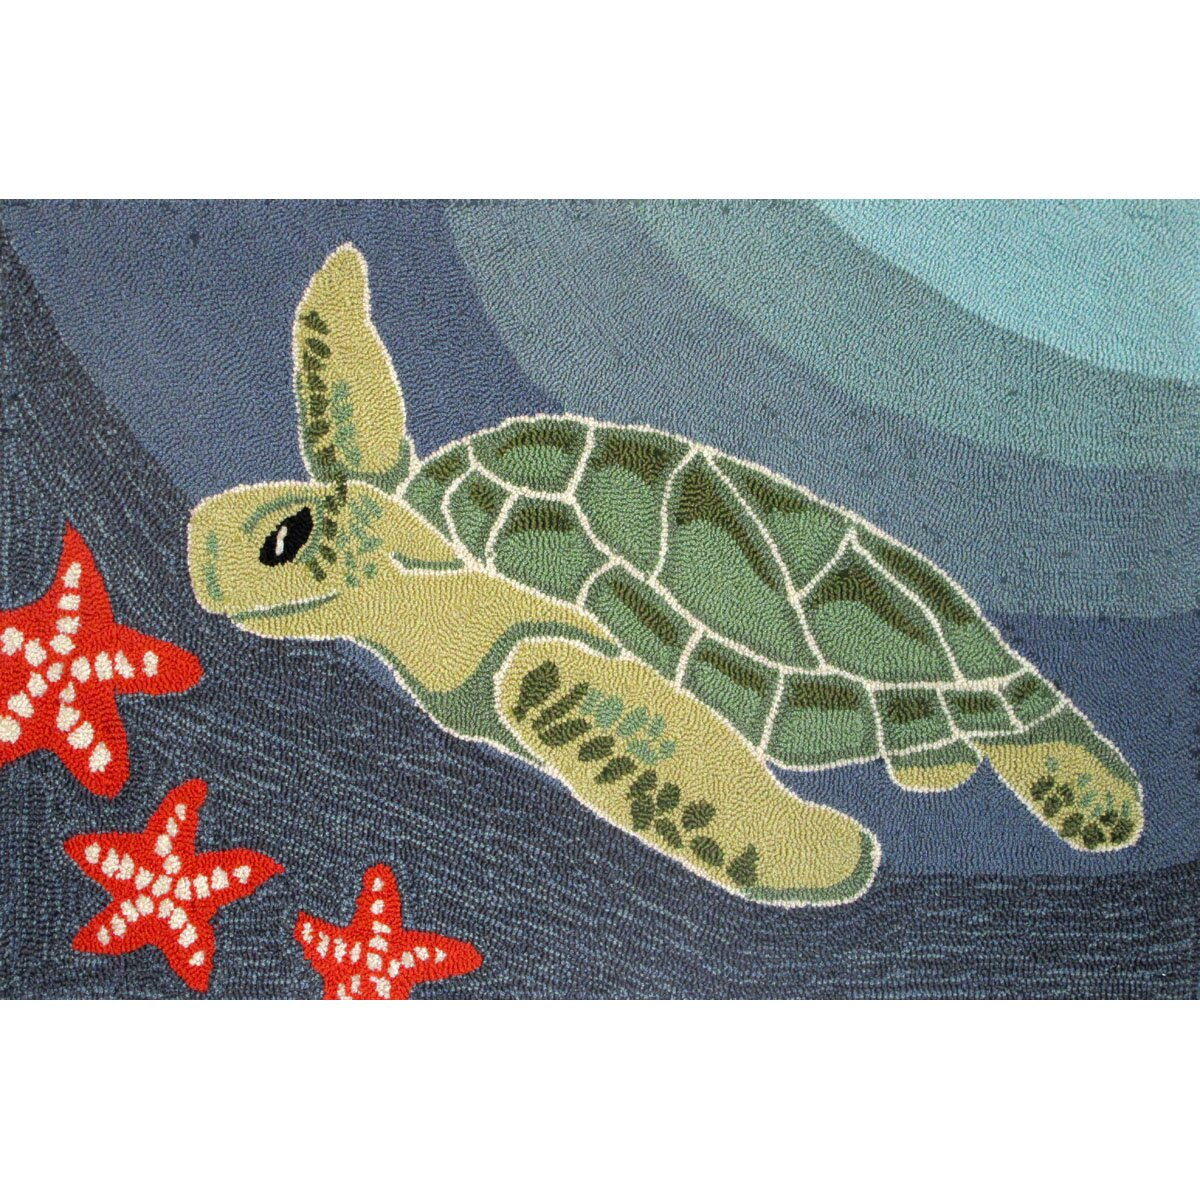 Liora Manne Frontporch Blue Ocean Sea Turtle Area Rug